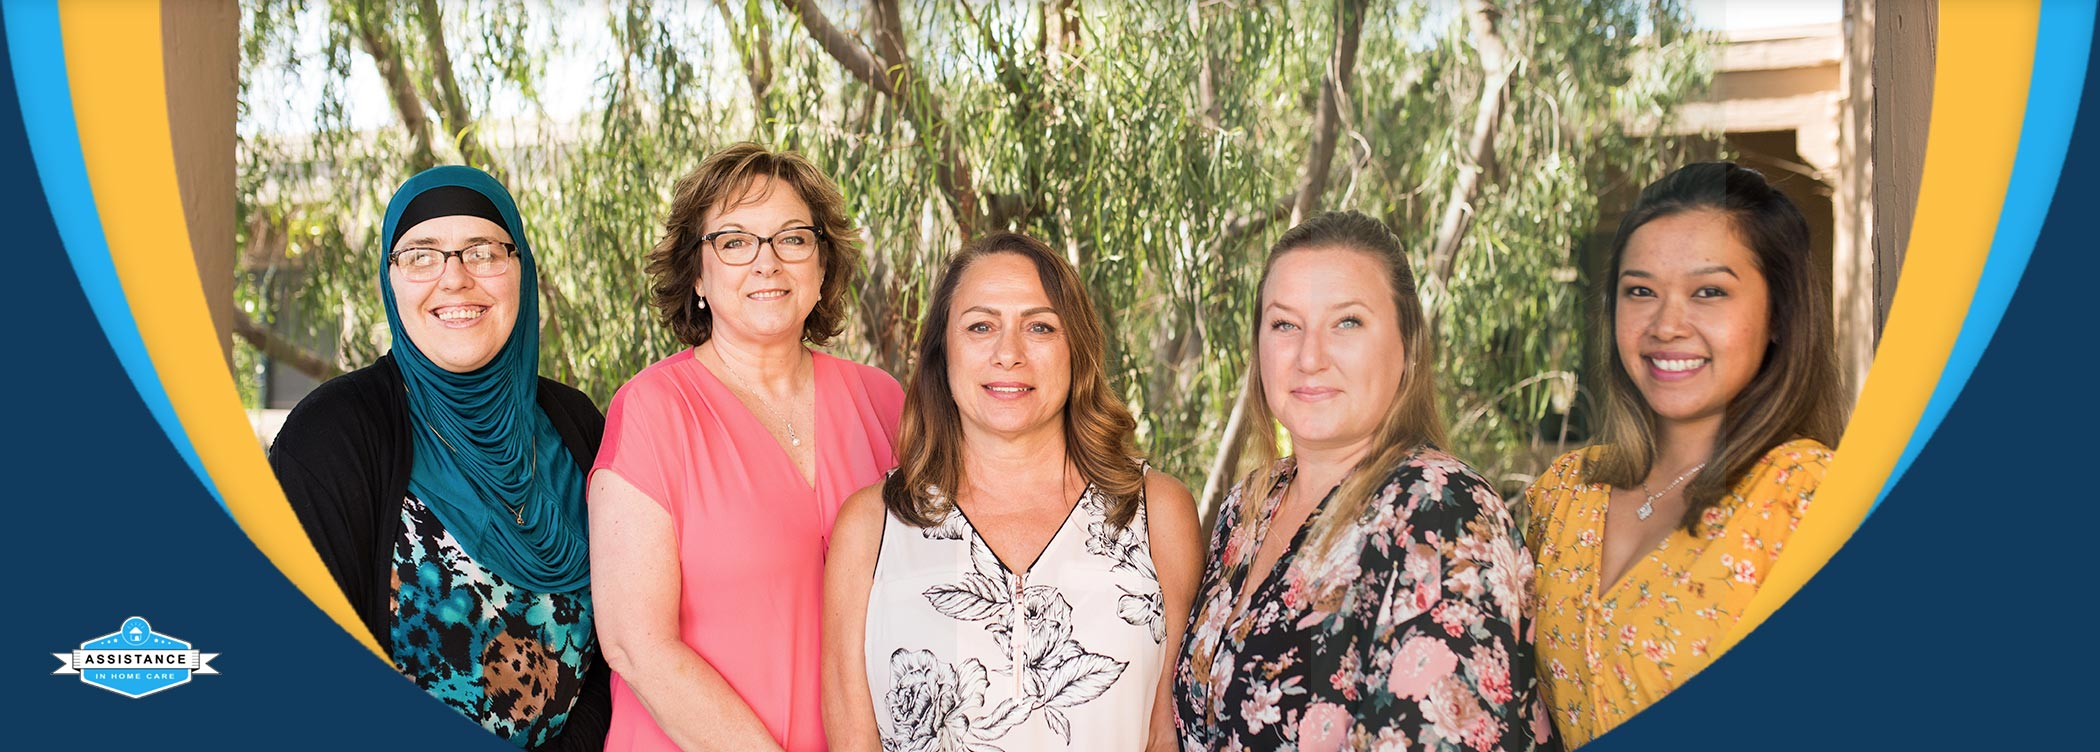 Assistance in Home Care - Team